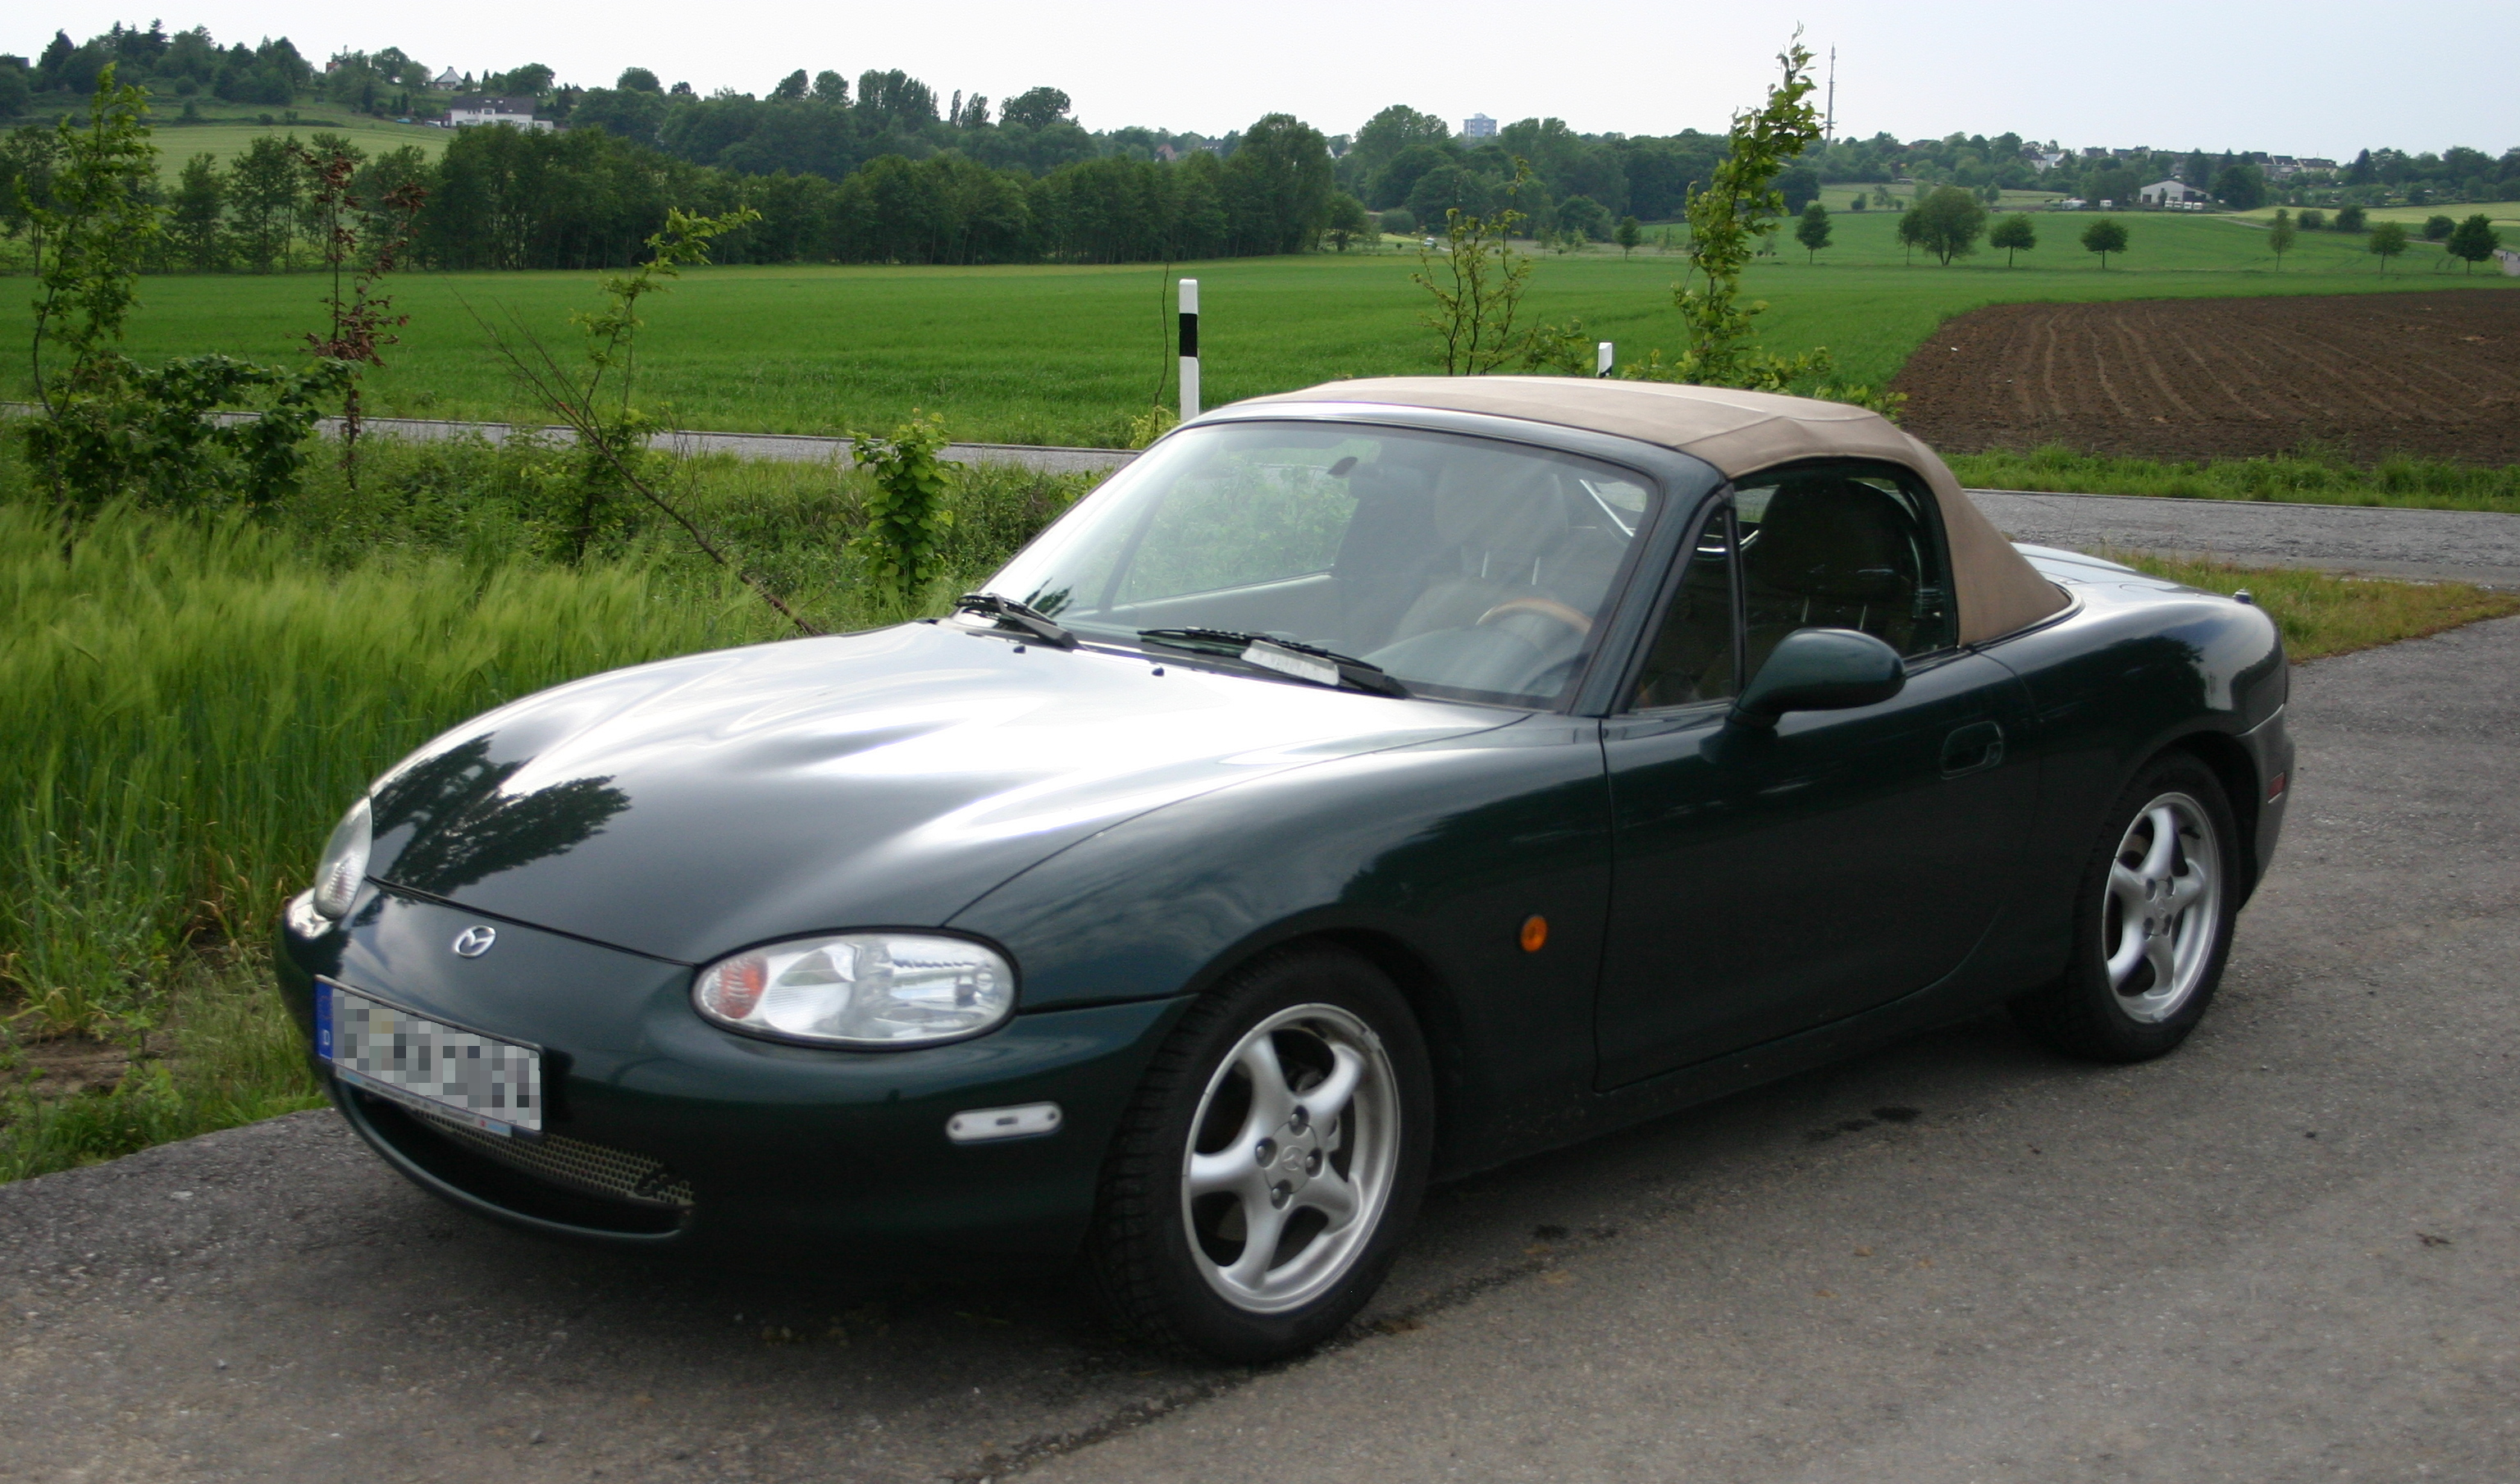 Mazda Mx 5 1999 Review Amazing Pictures And Images